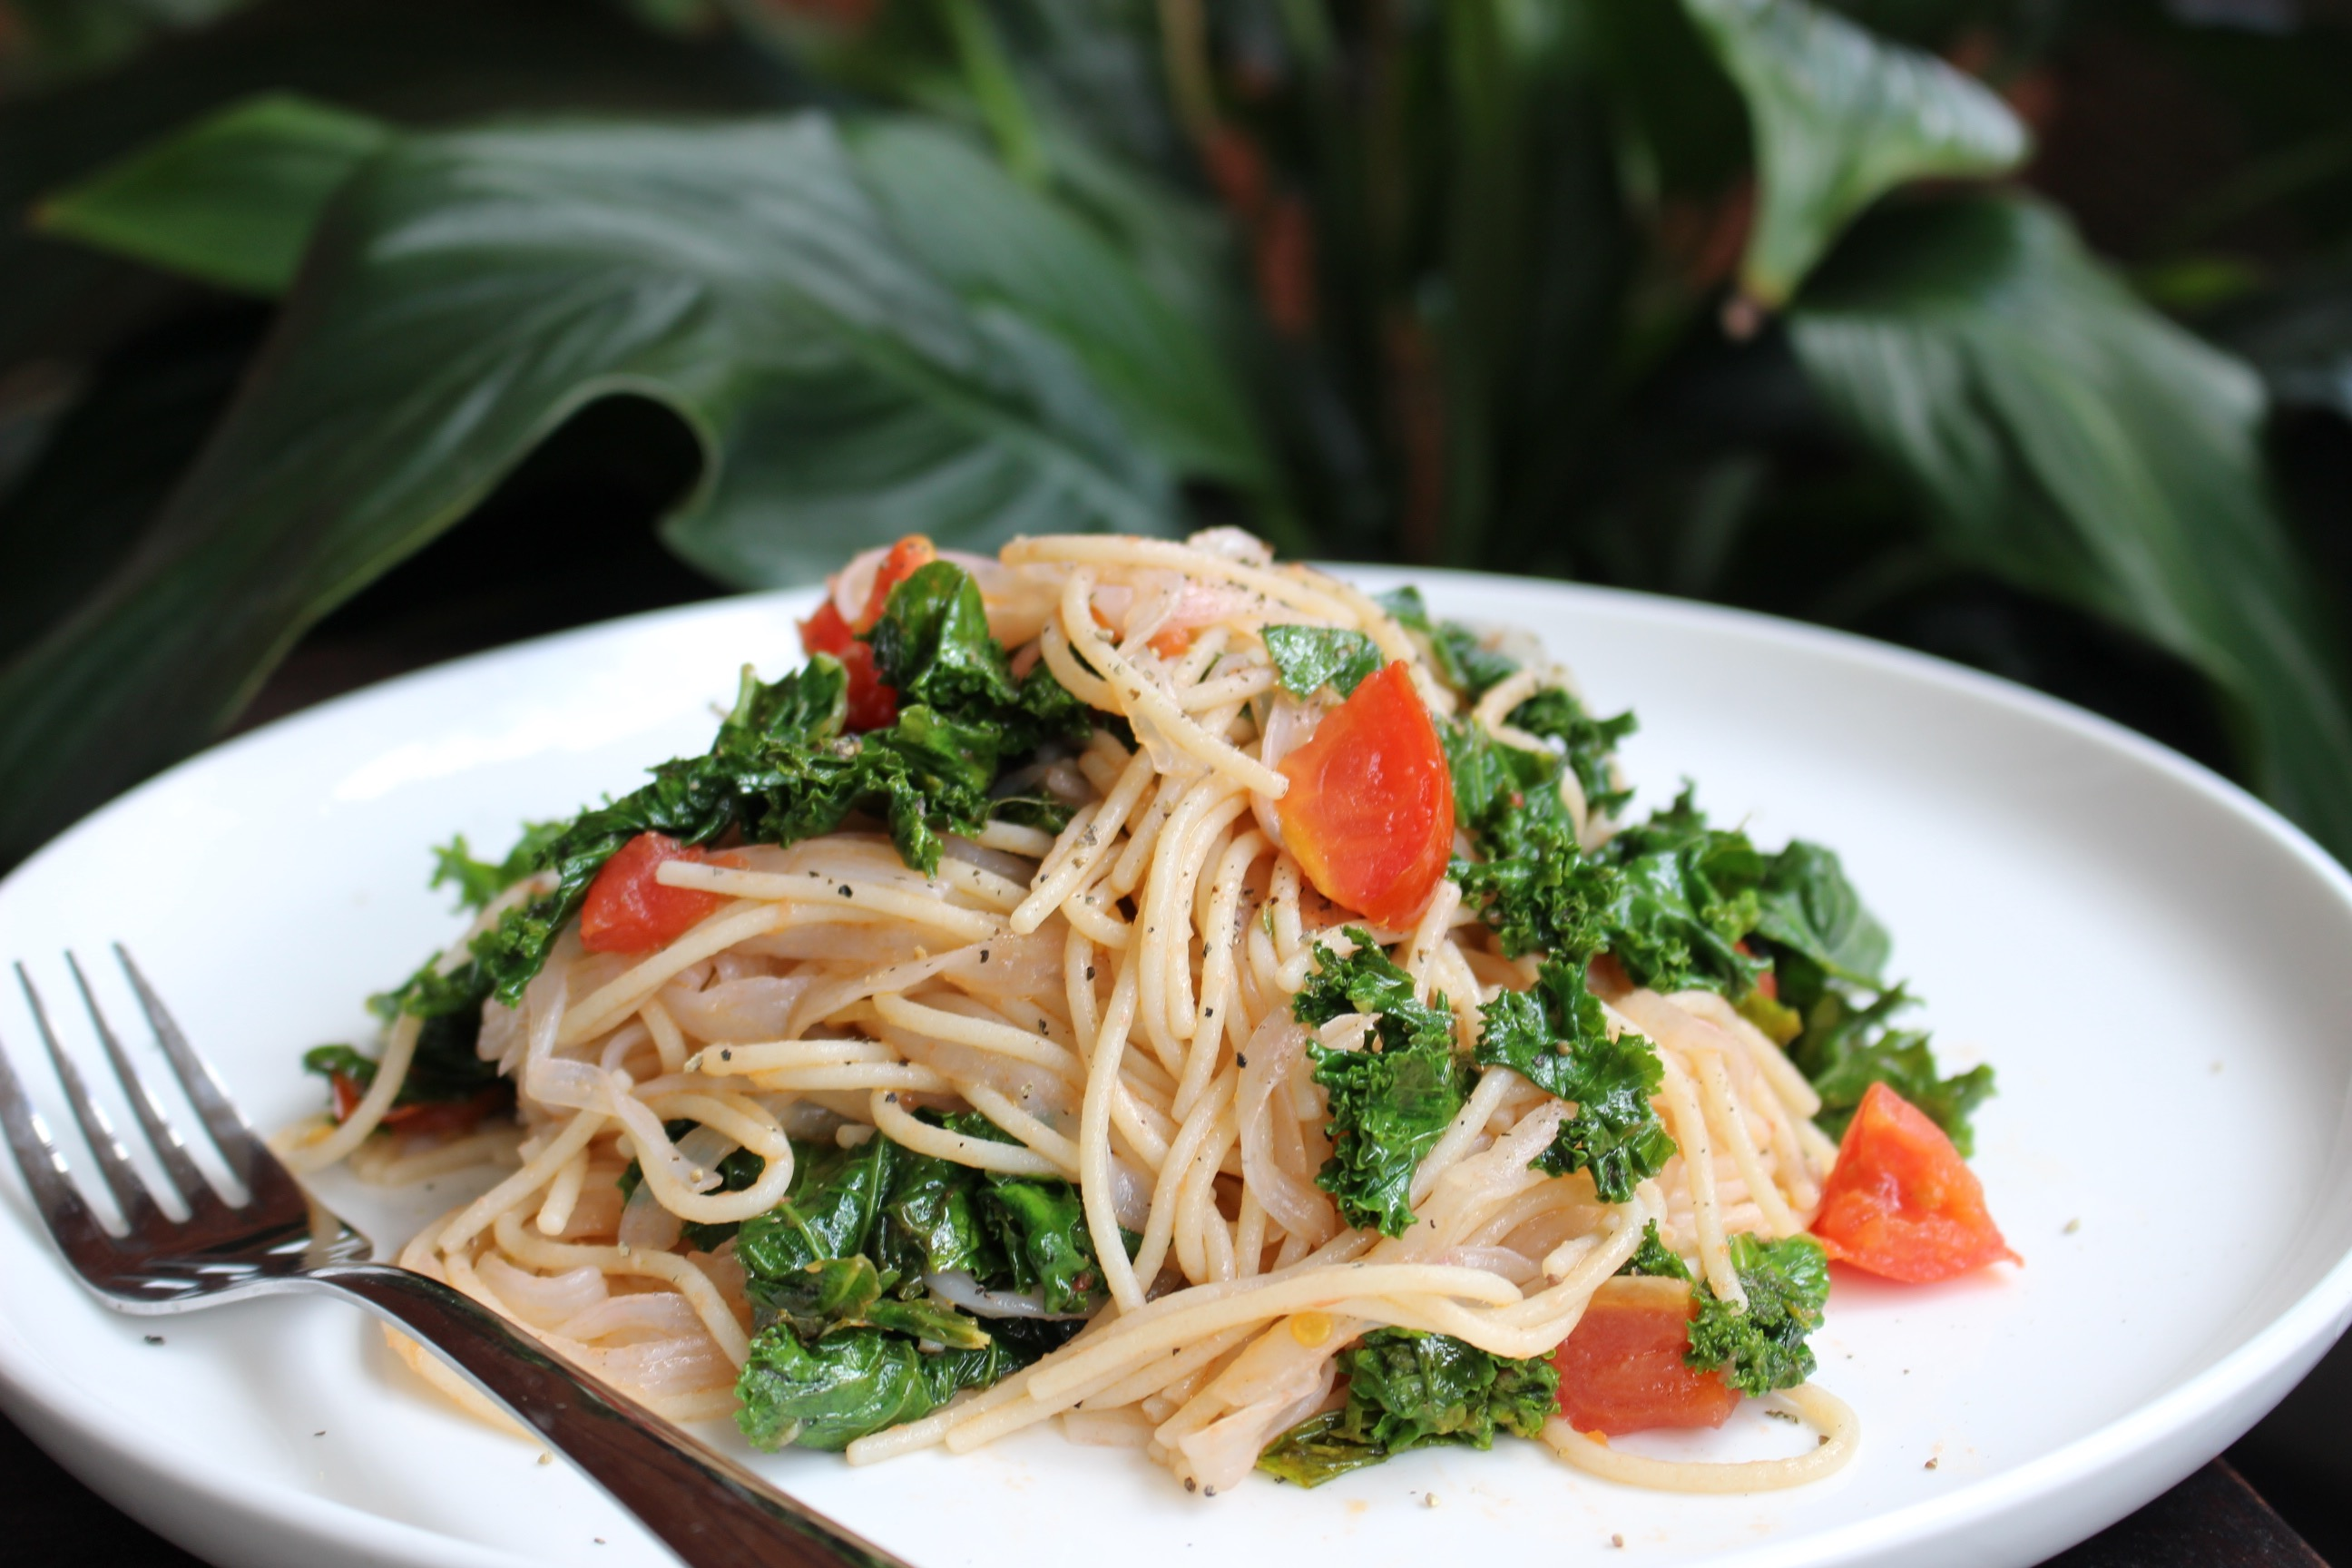 Slendier Pasta with Garlic, Tomato and Kale